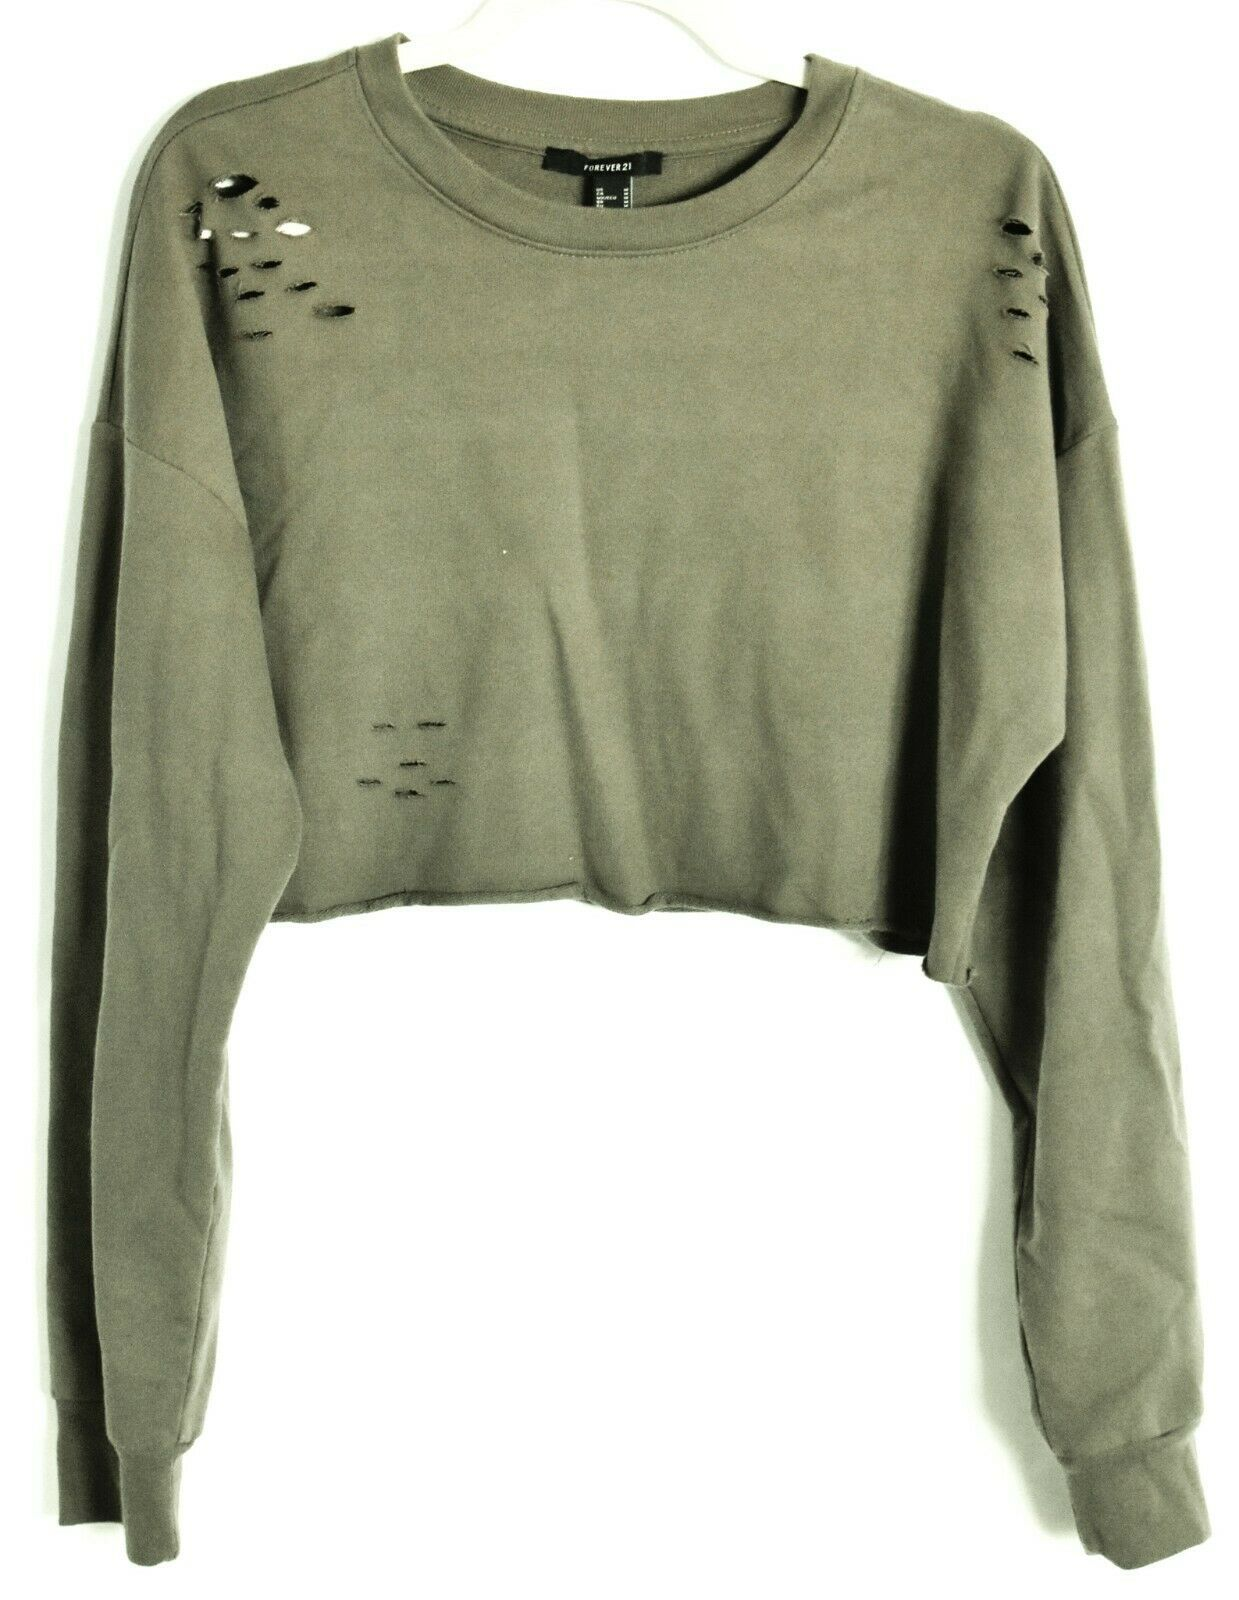 Forever 21 Olive Green Cut Slashed Distressed Holes Long Sleeve Cropped Top Sz M